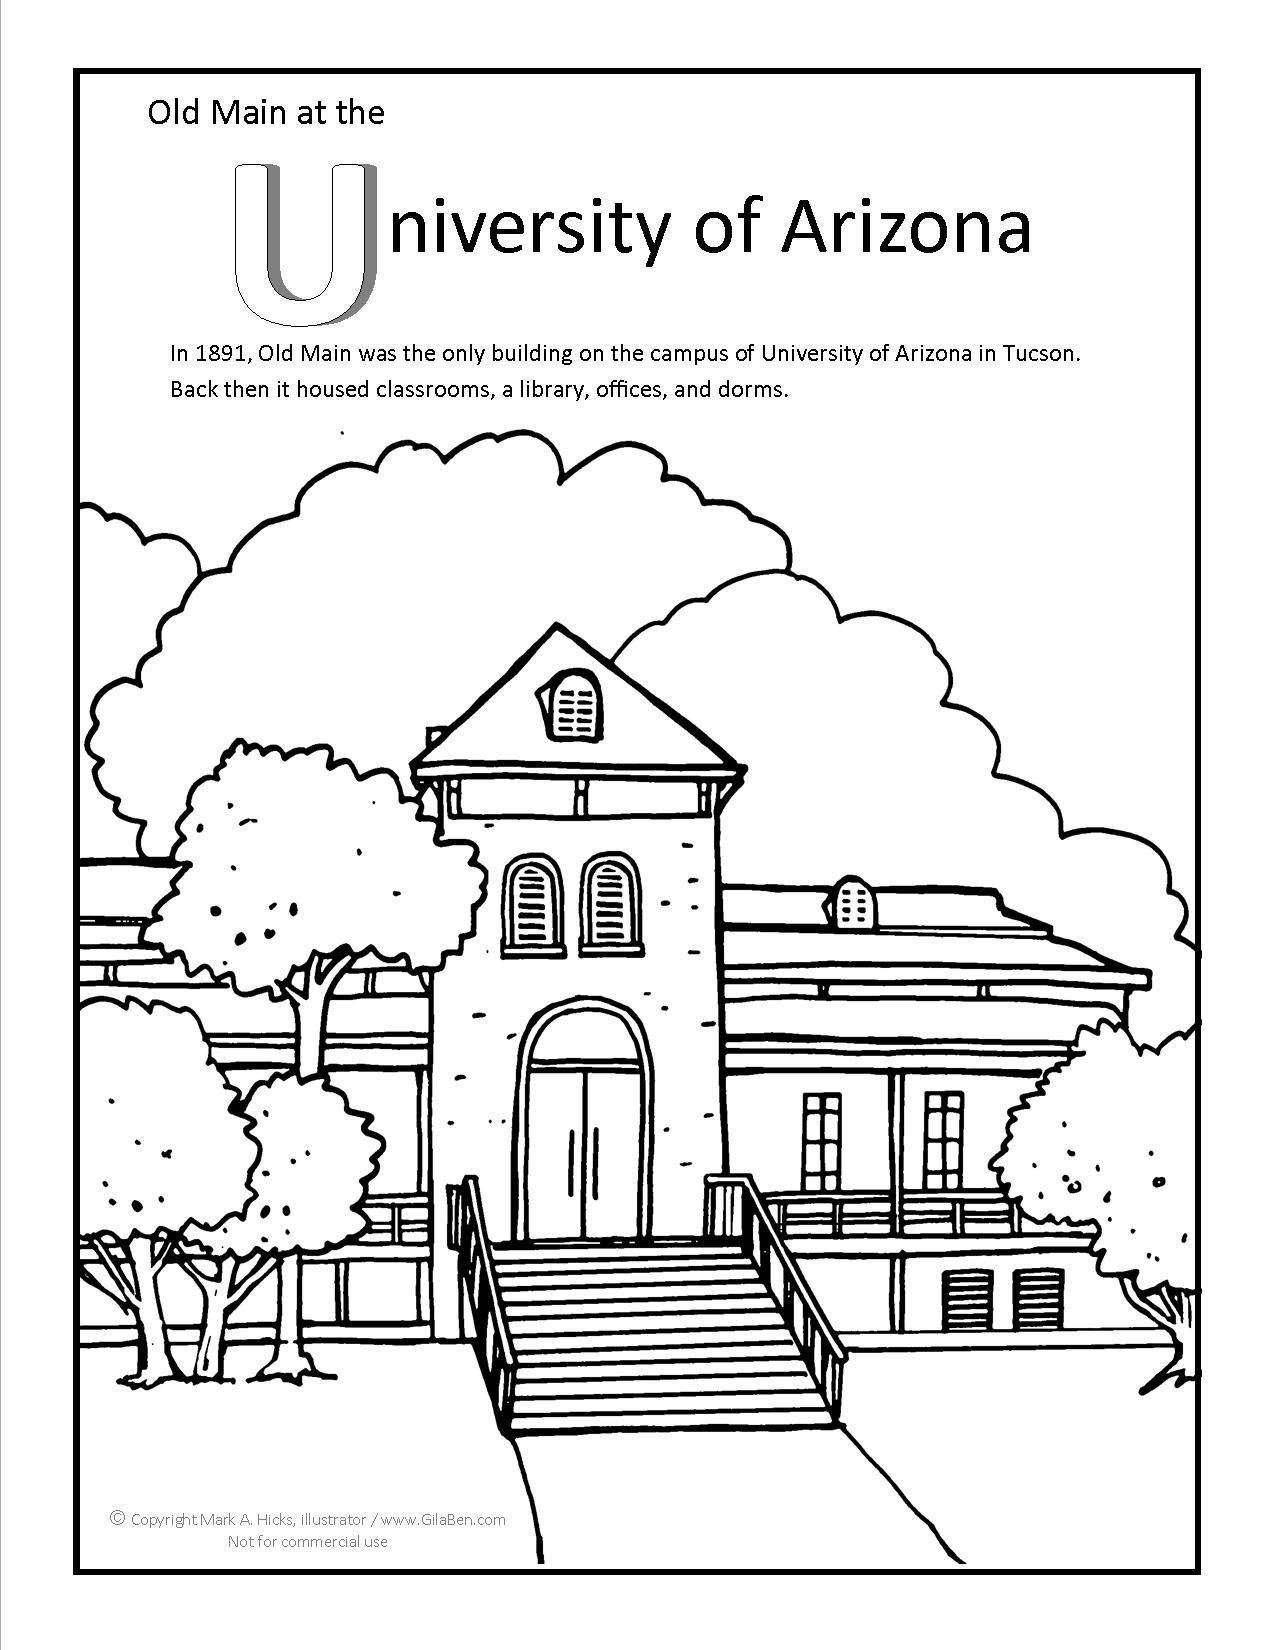 university of arizona old main coloring page